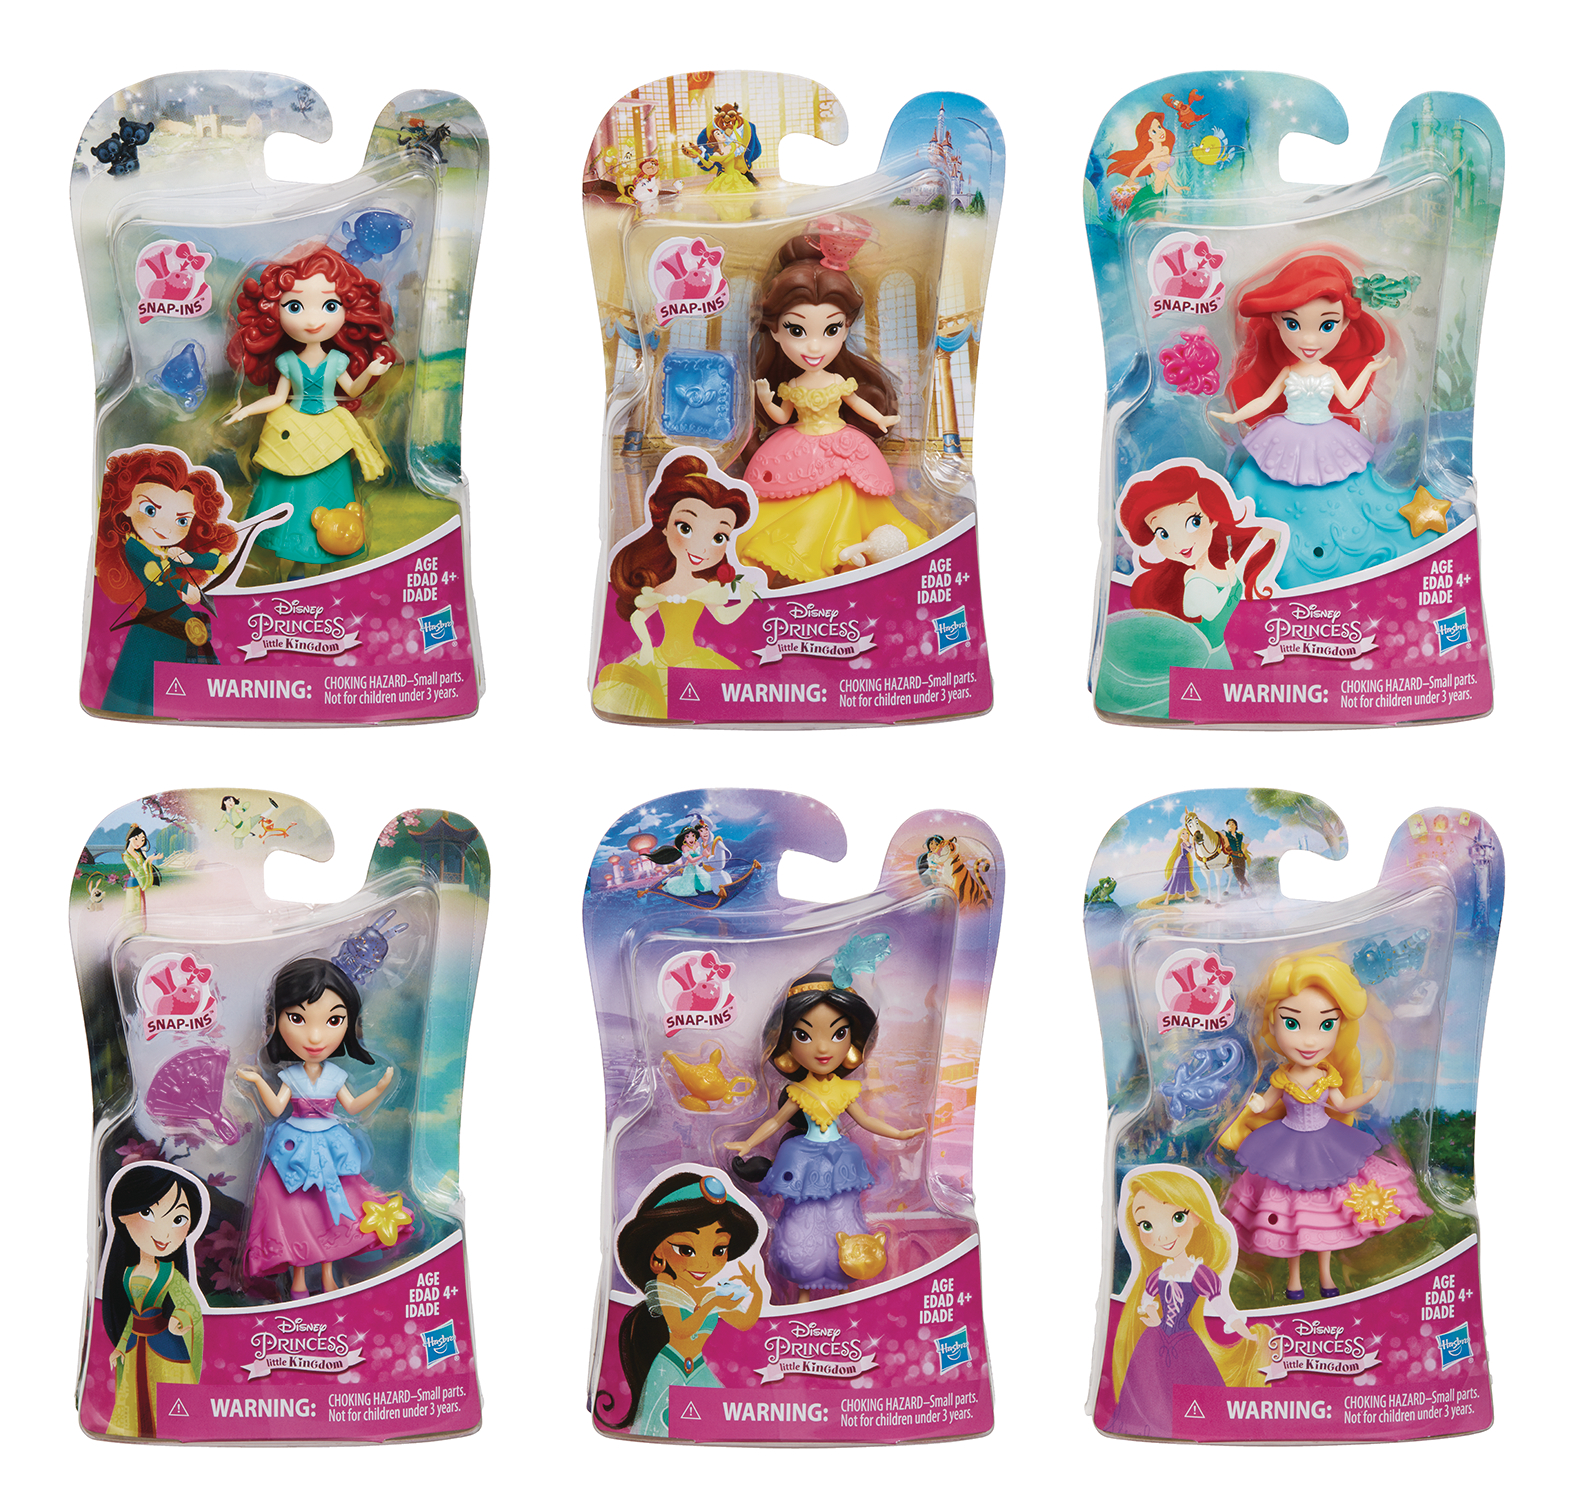 DISNEY PRINCESS SMALL DOLL ASST 201701